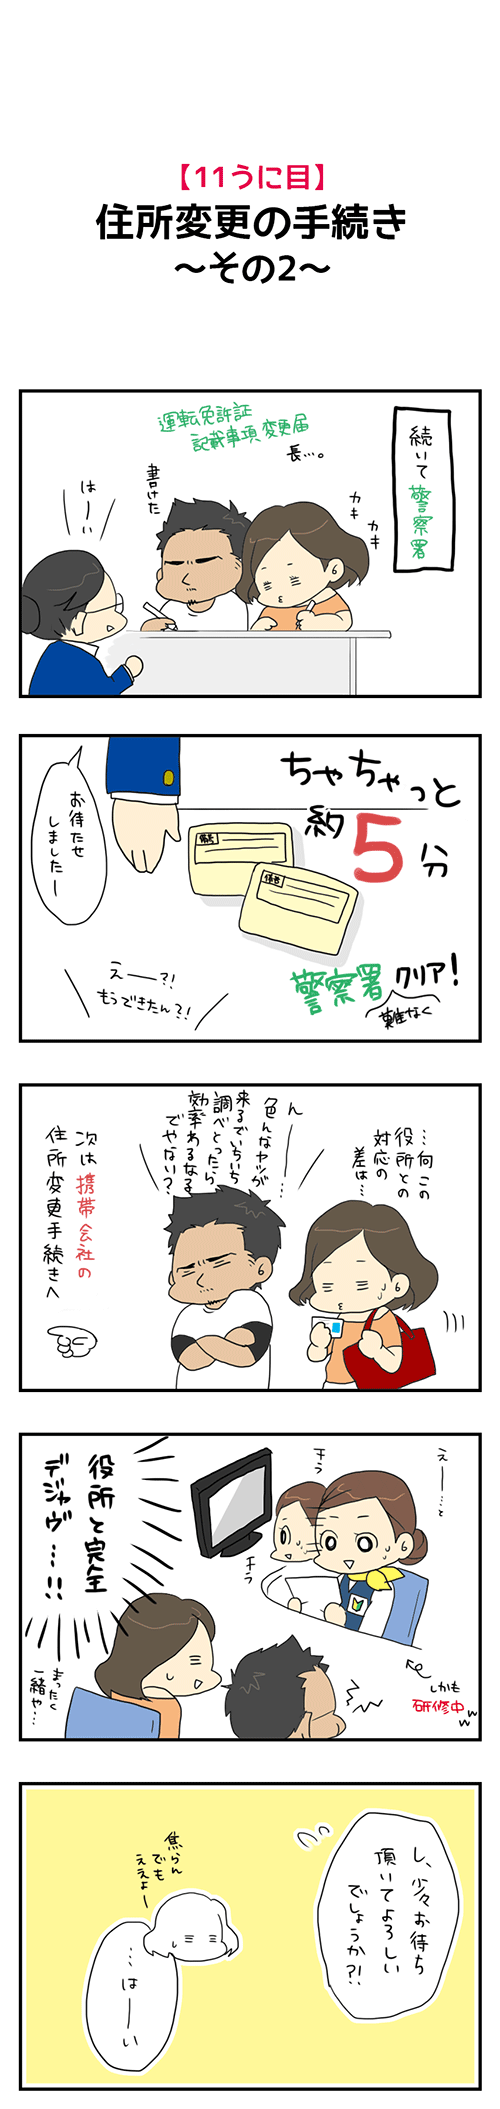 20140905_1.png